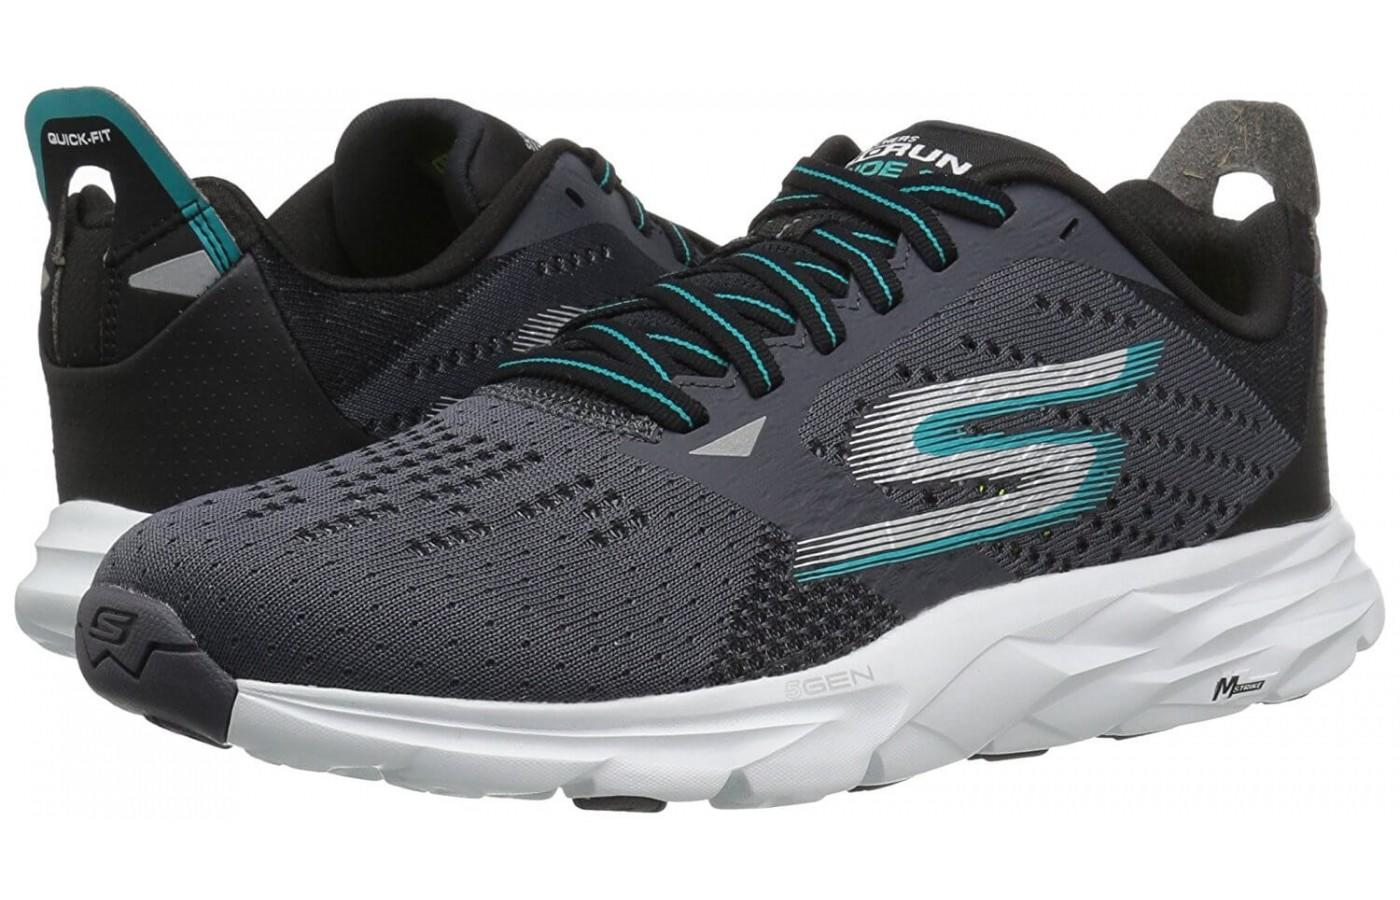 the Skecher GOrun Ride 6 is a solid everyday running shoe